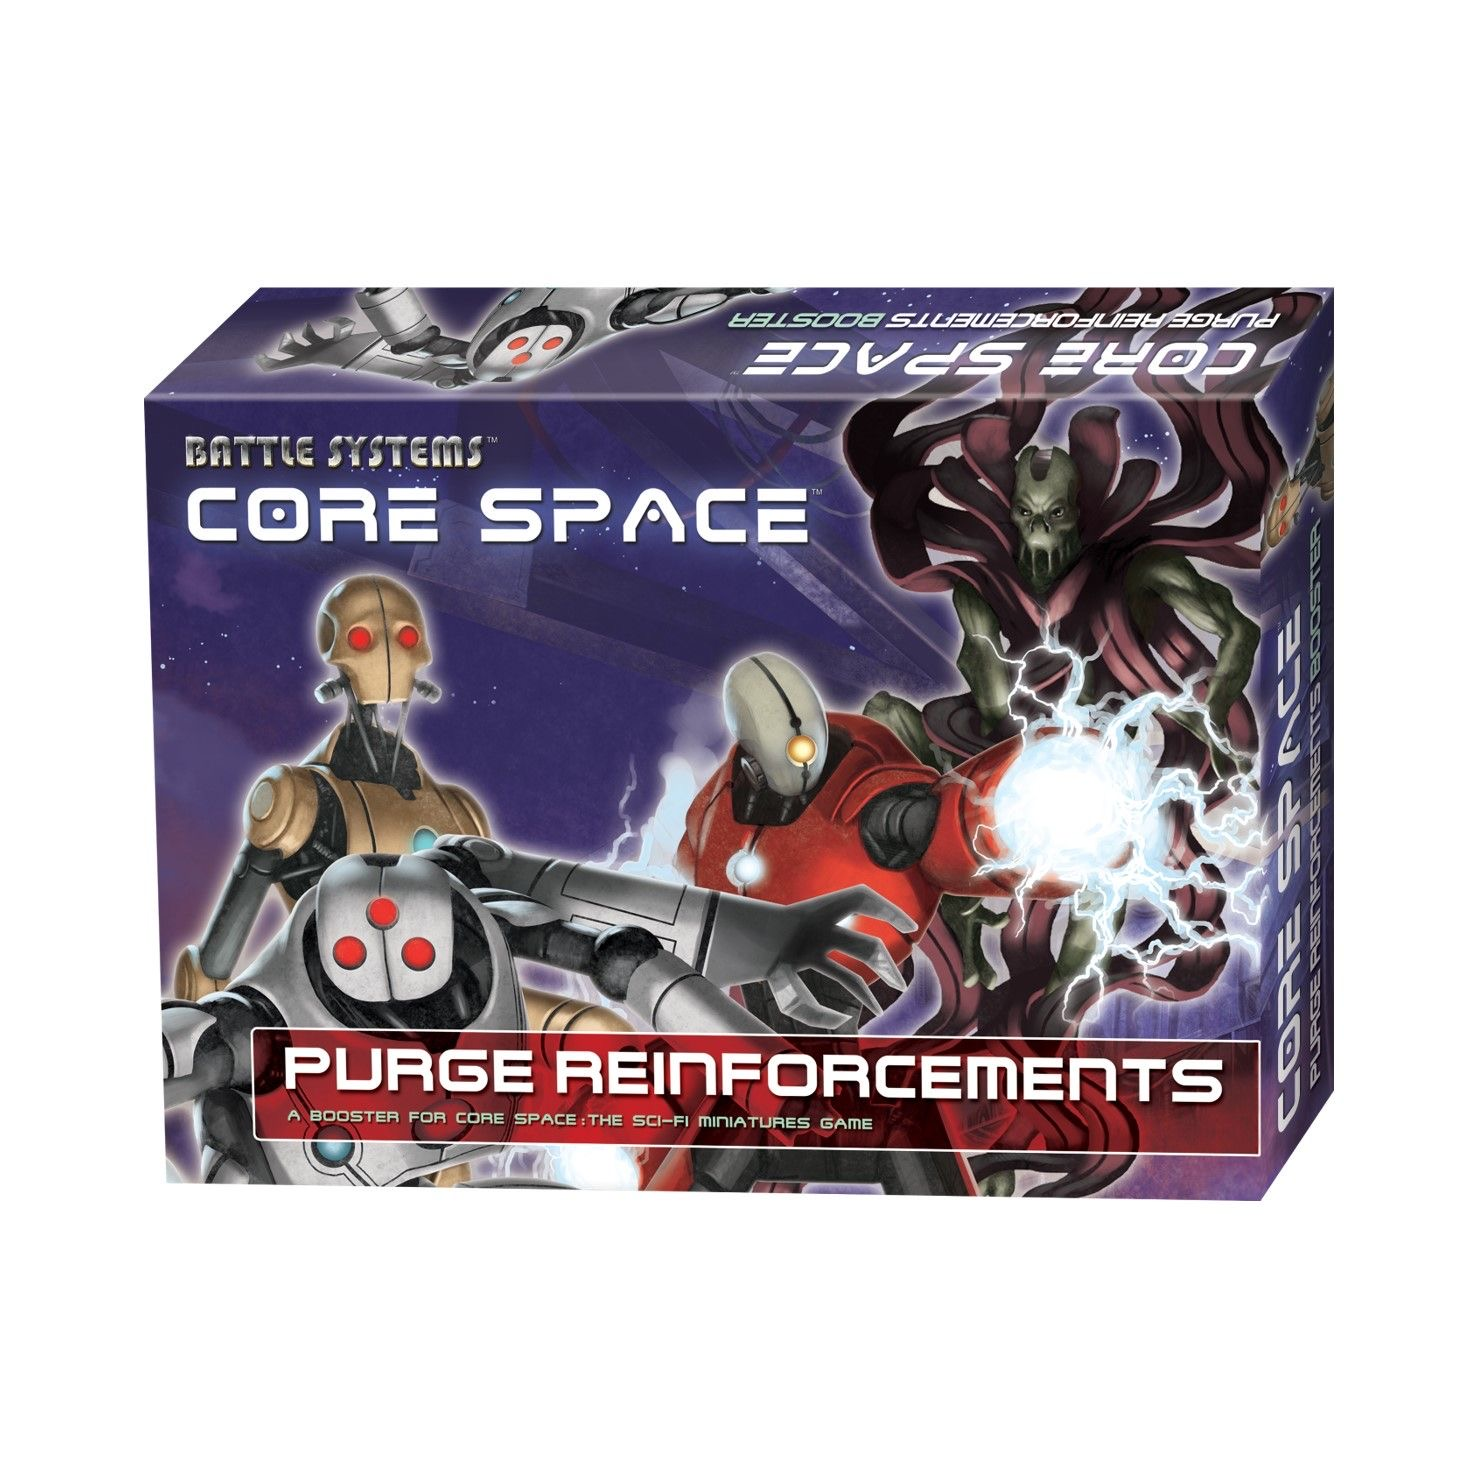 Core Space Purge Reinforcements